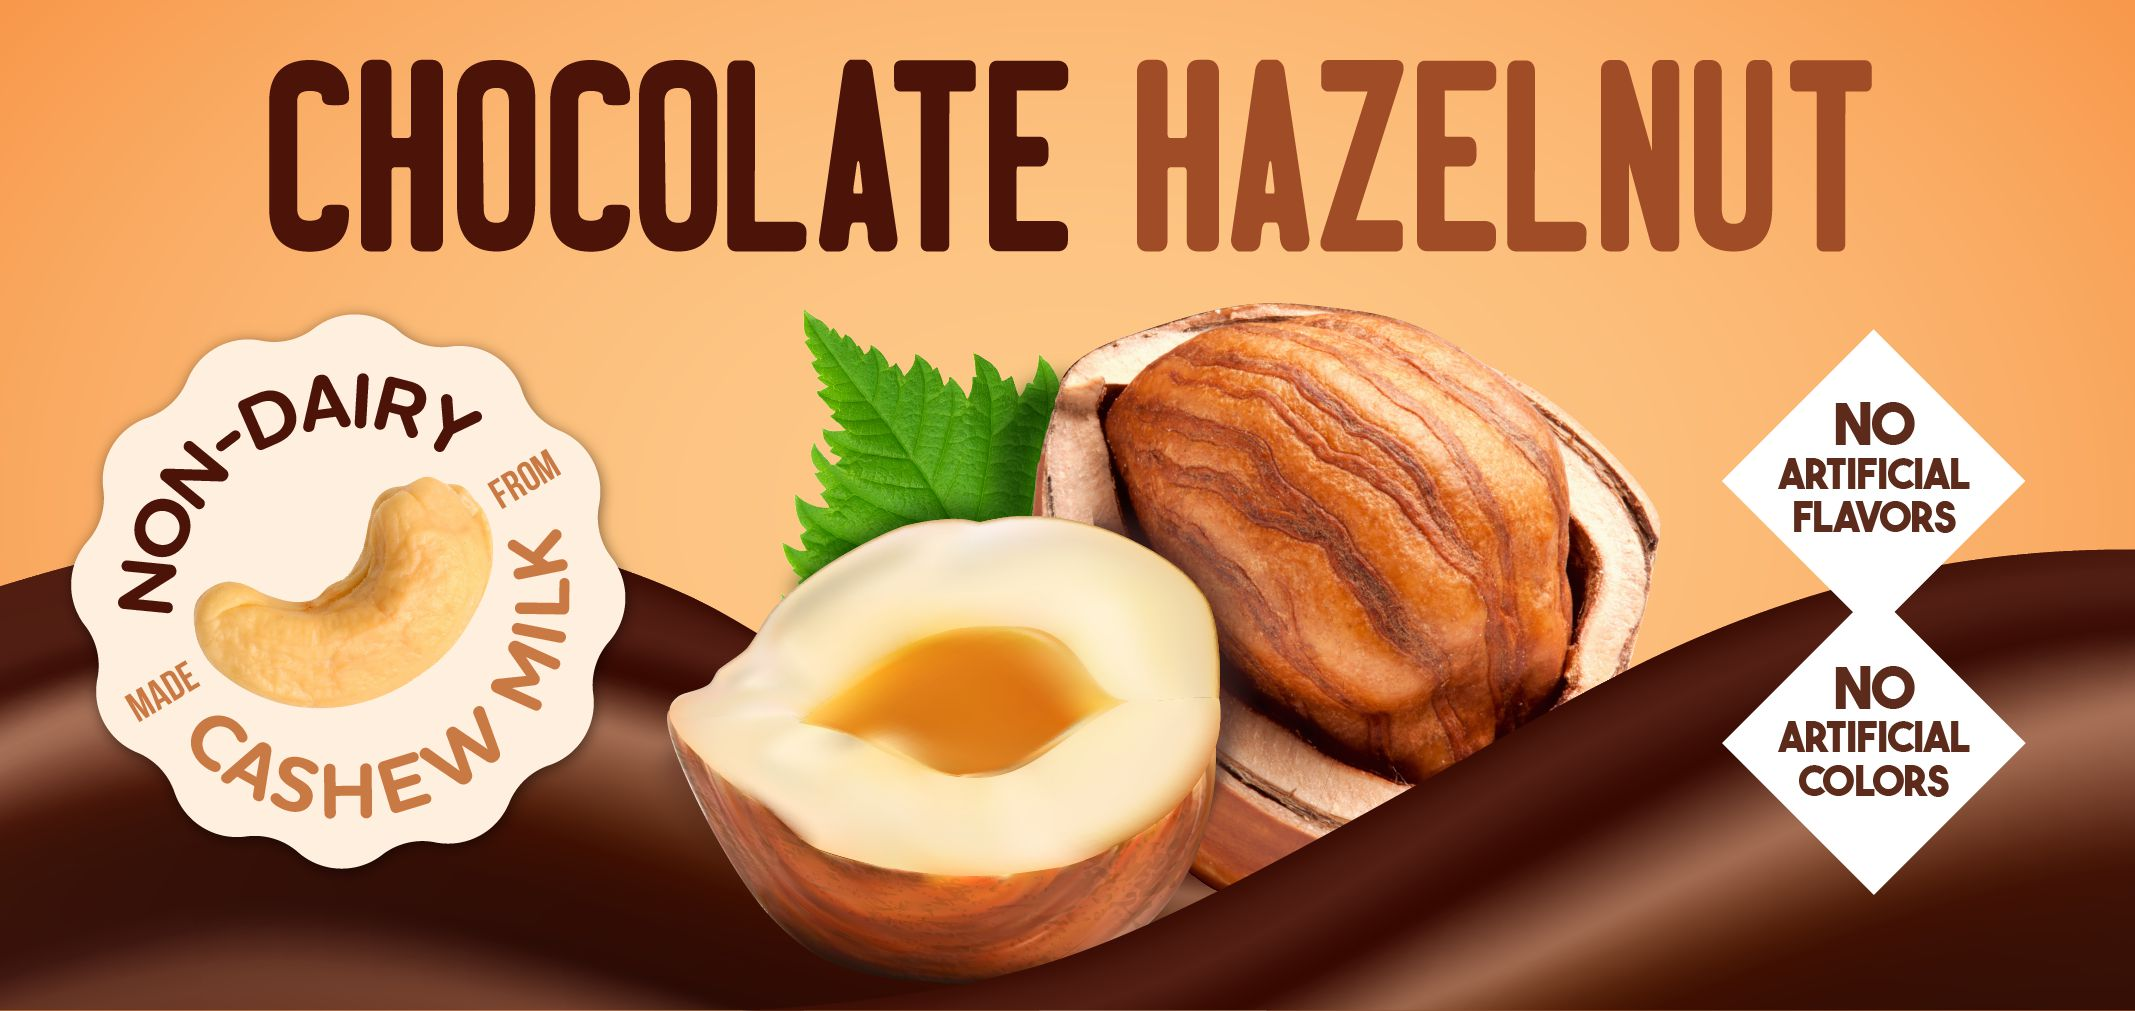 chocolate hazelnut made from cashew milk label image